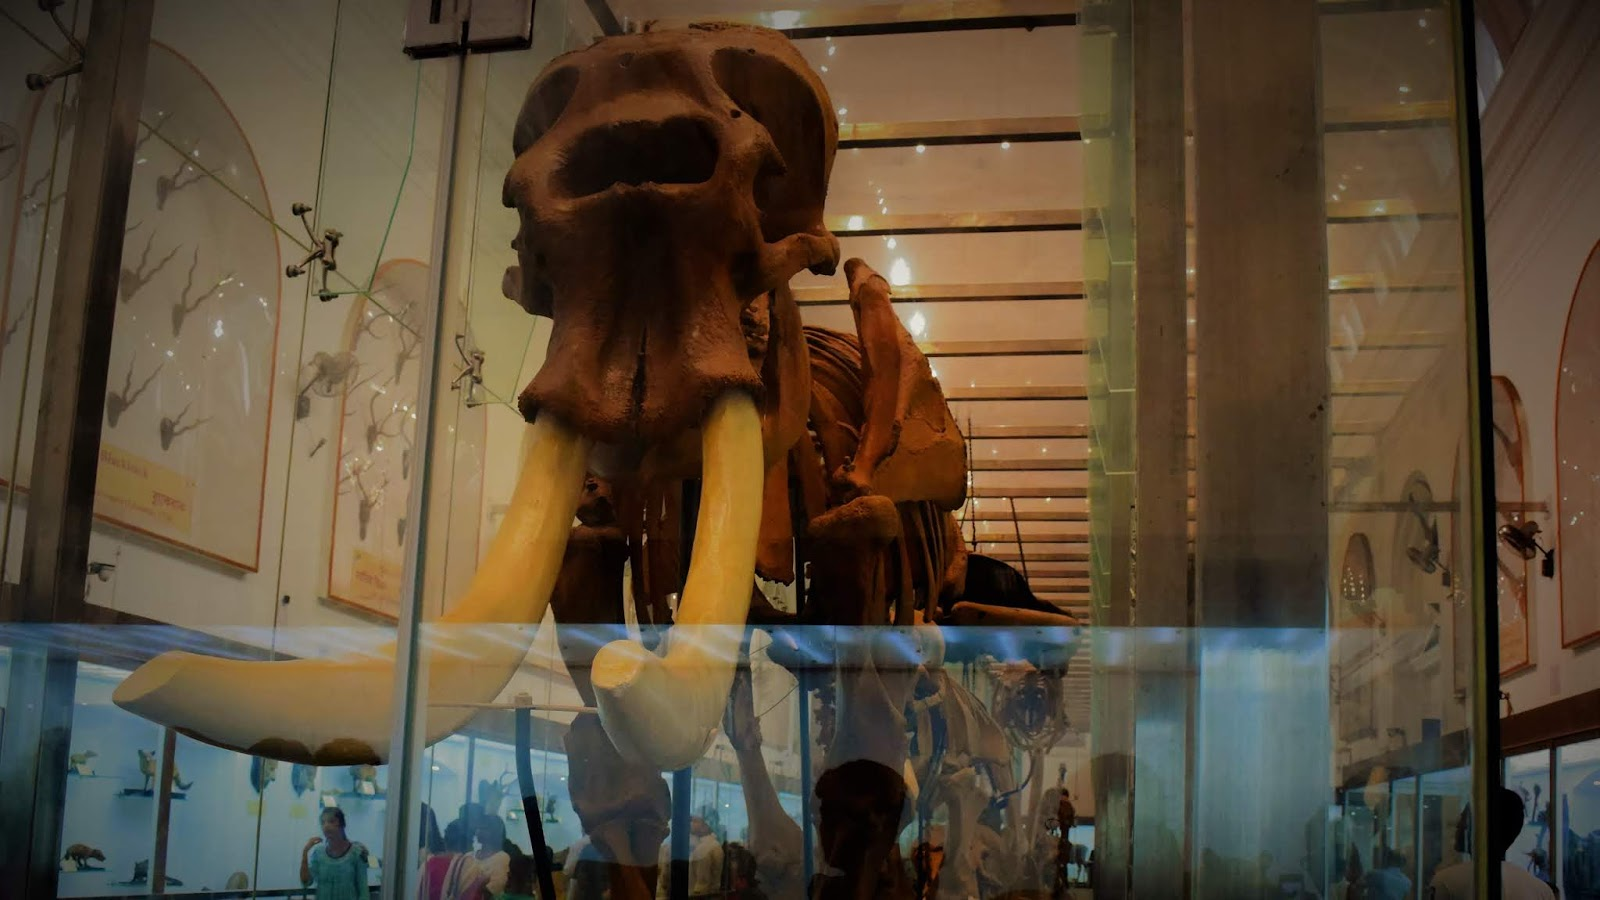 The massive skeleton of the Mammoth at the Indian Museum Kolkata